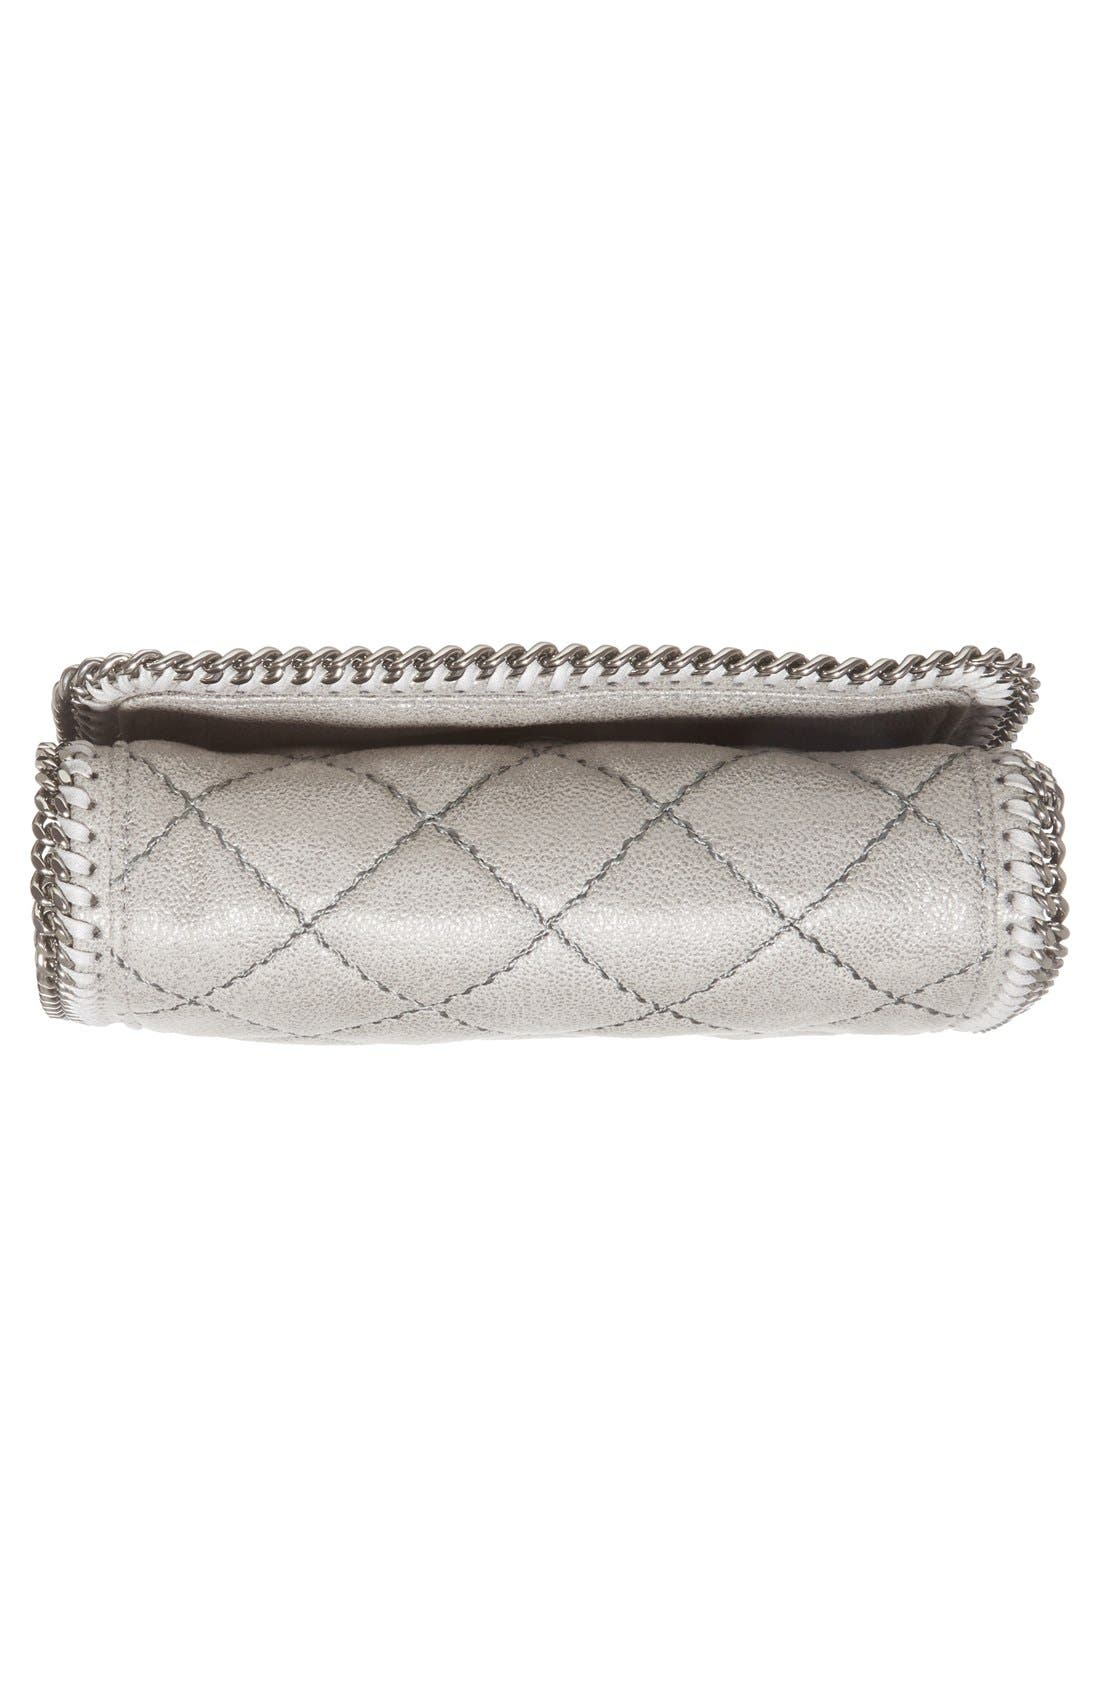 'Falabella' Quilted Faux Leather Crossbody Bag,                             Alternate thumbnail 9, color,